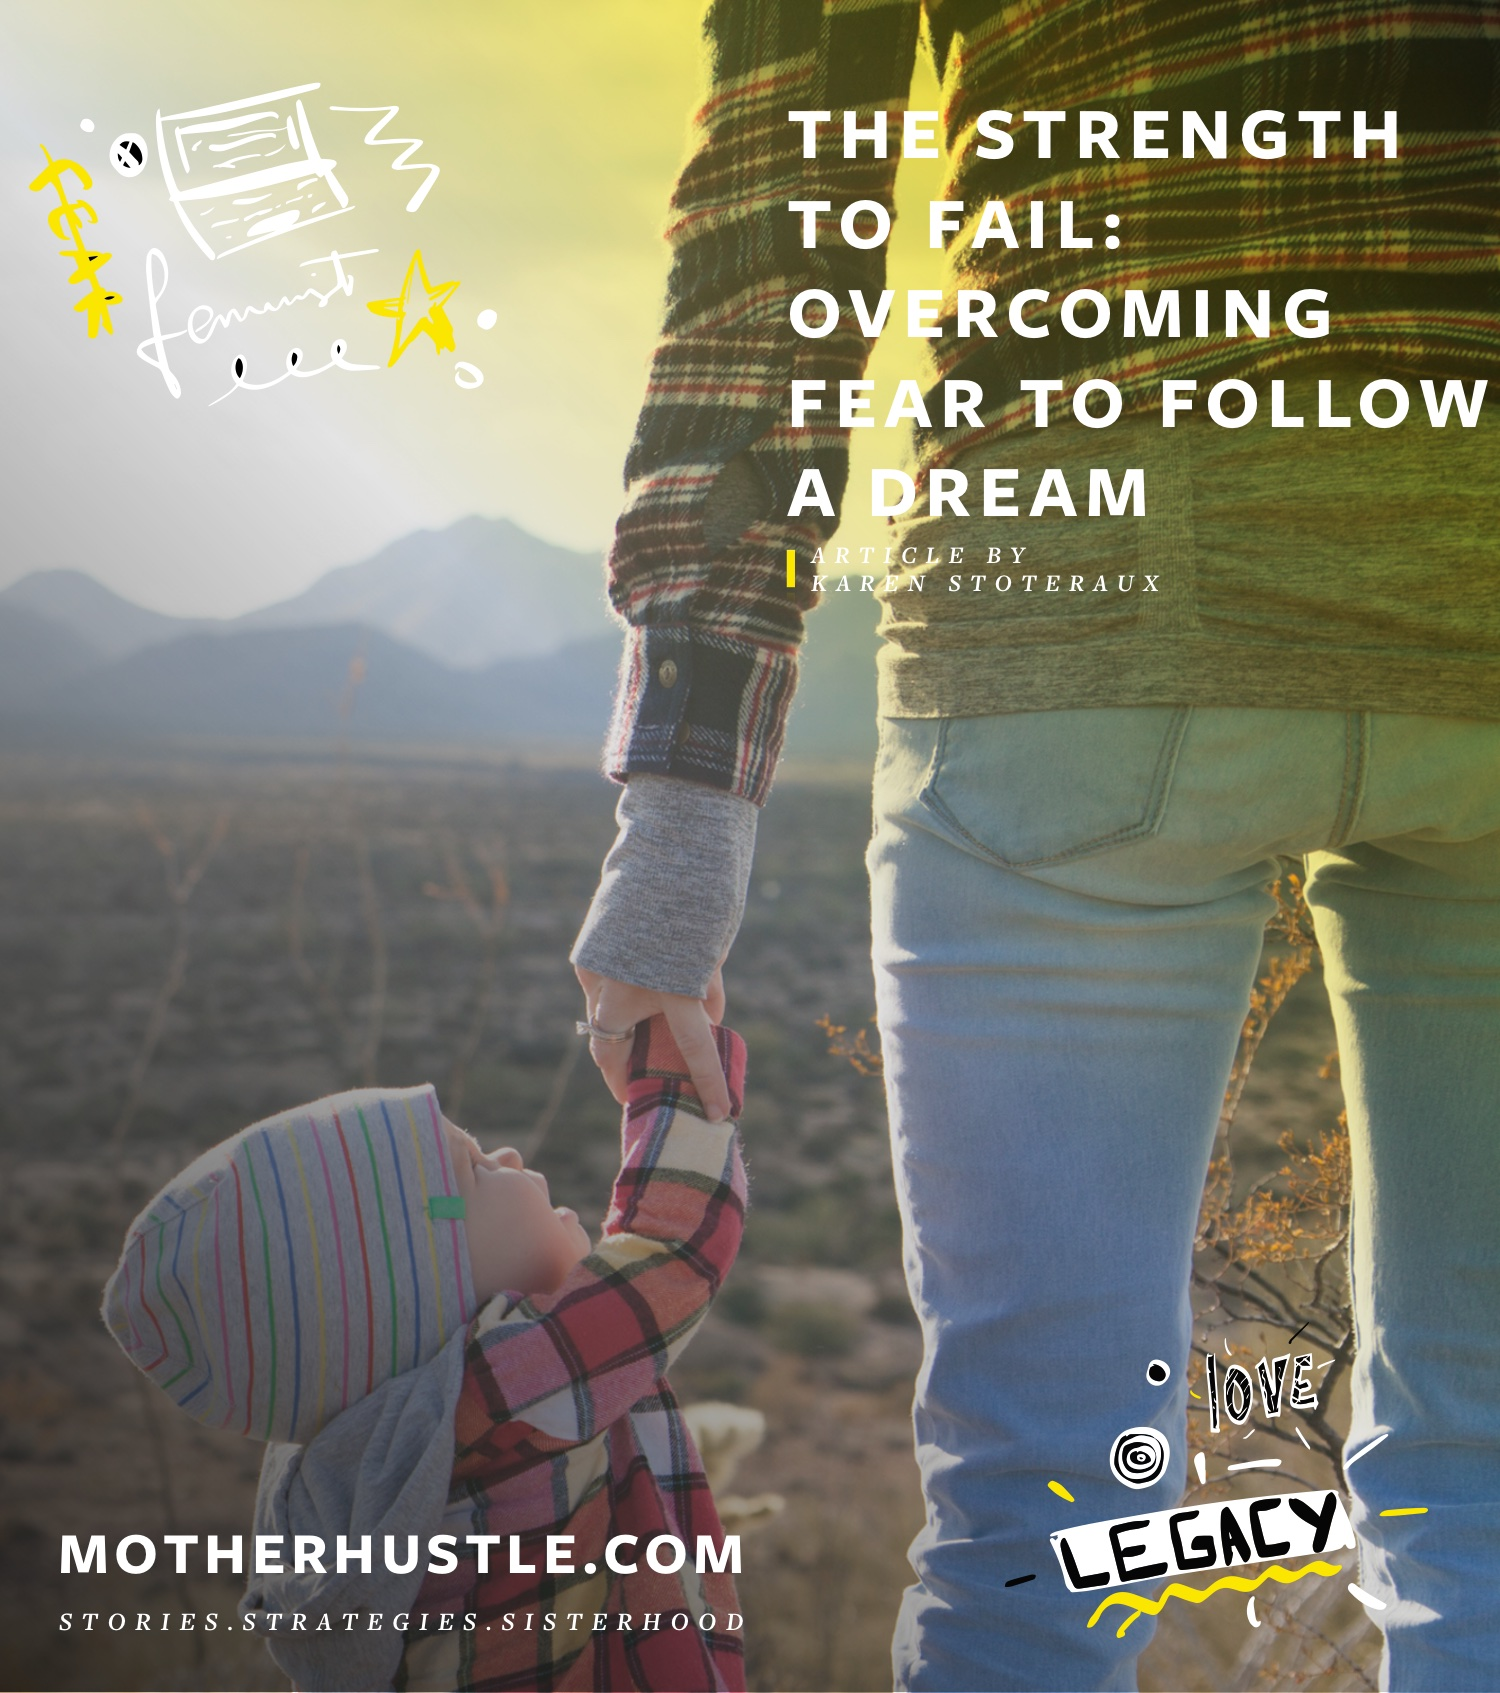 The Strength to Fail- Overcoming Fear To Follow A Dream - by Karen Stoteraux for MotherHustle